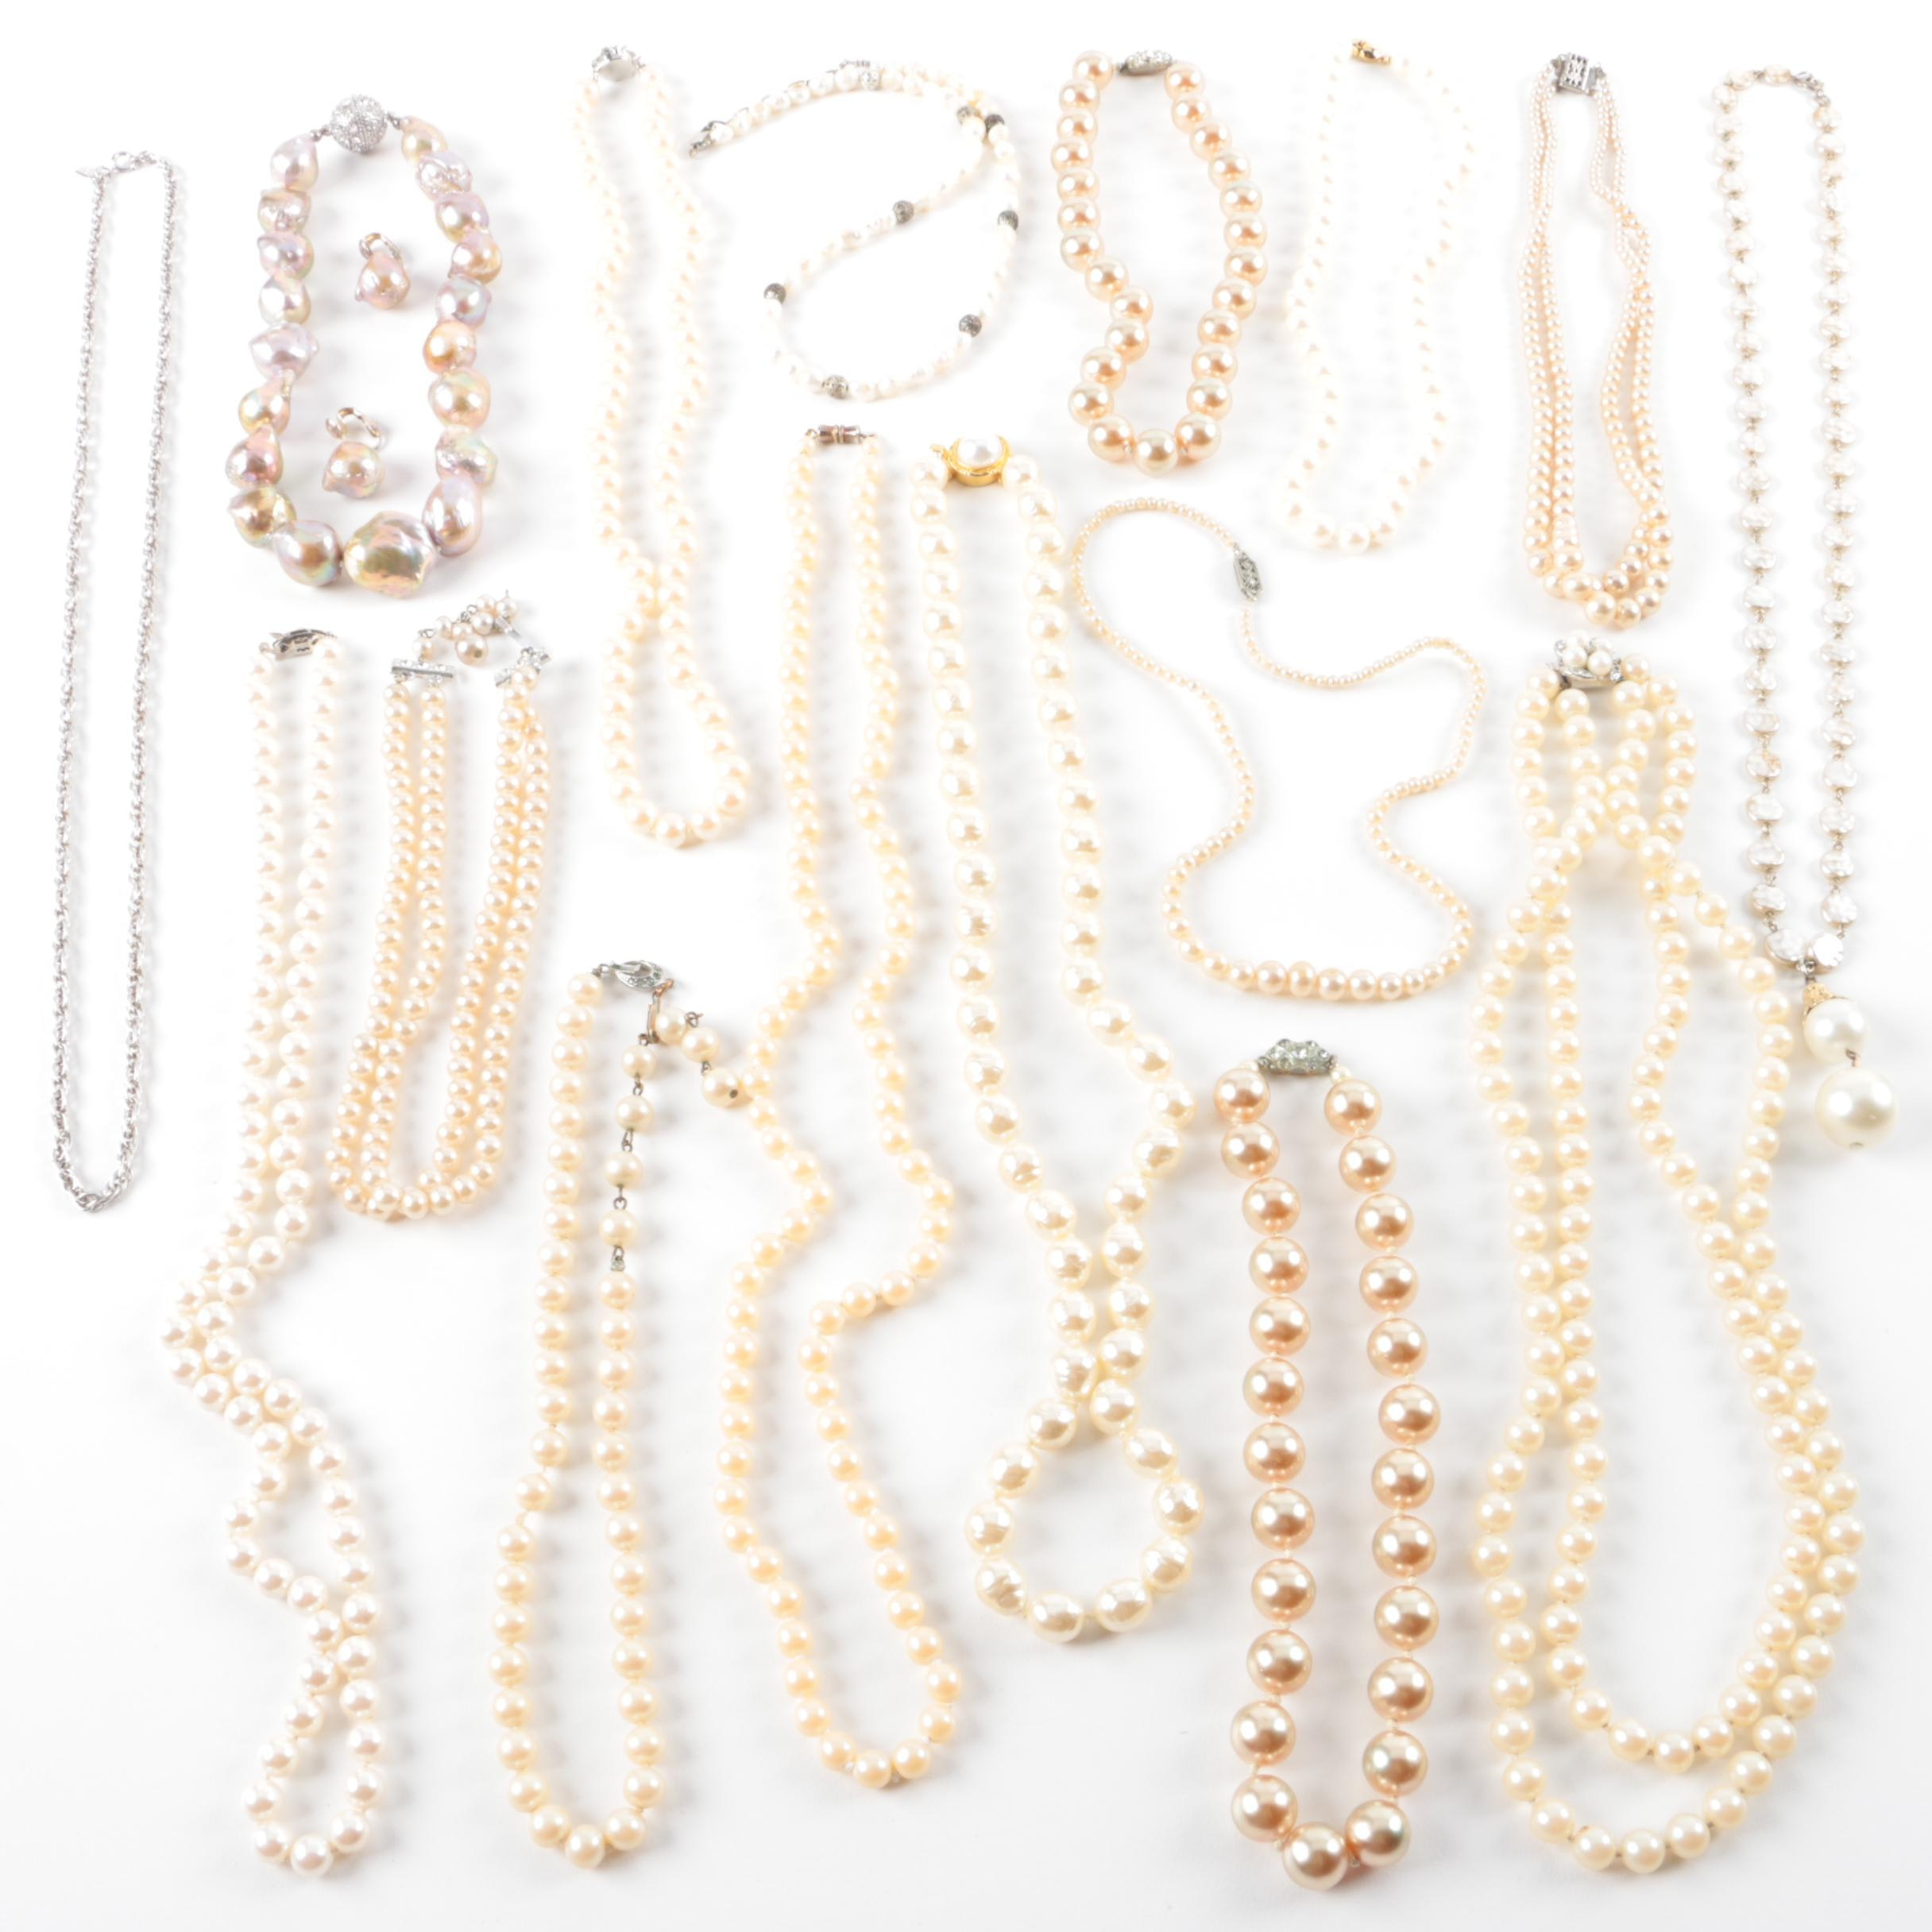 Selection of Beaded Necklaces and Earrings Including Cultured Pearls